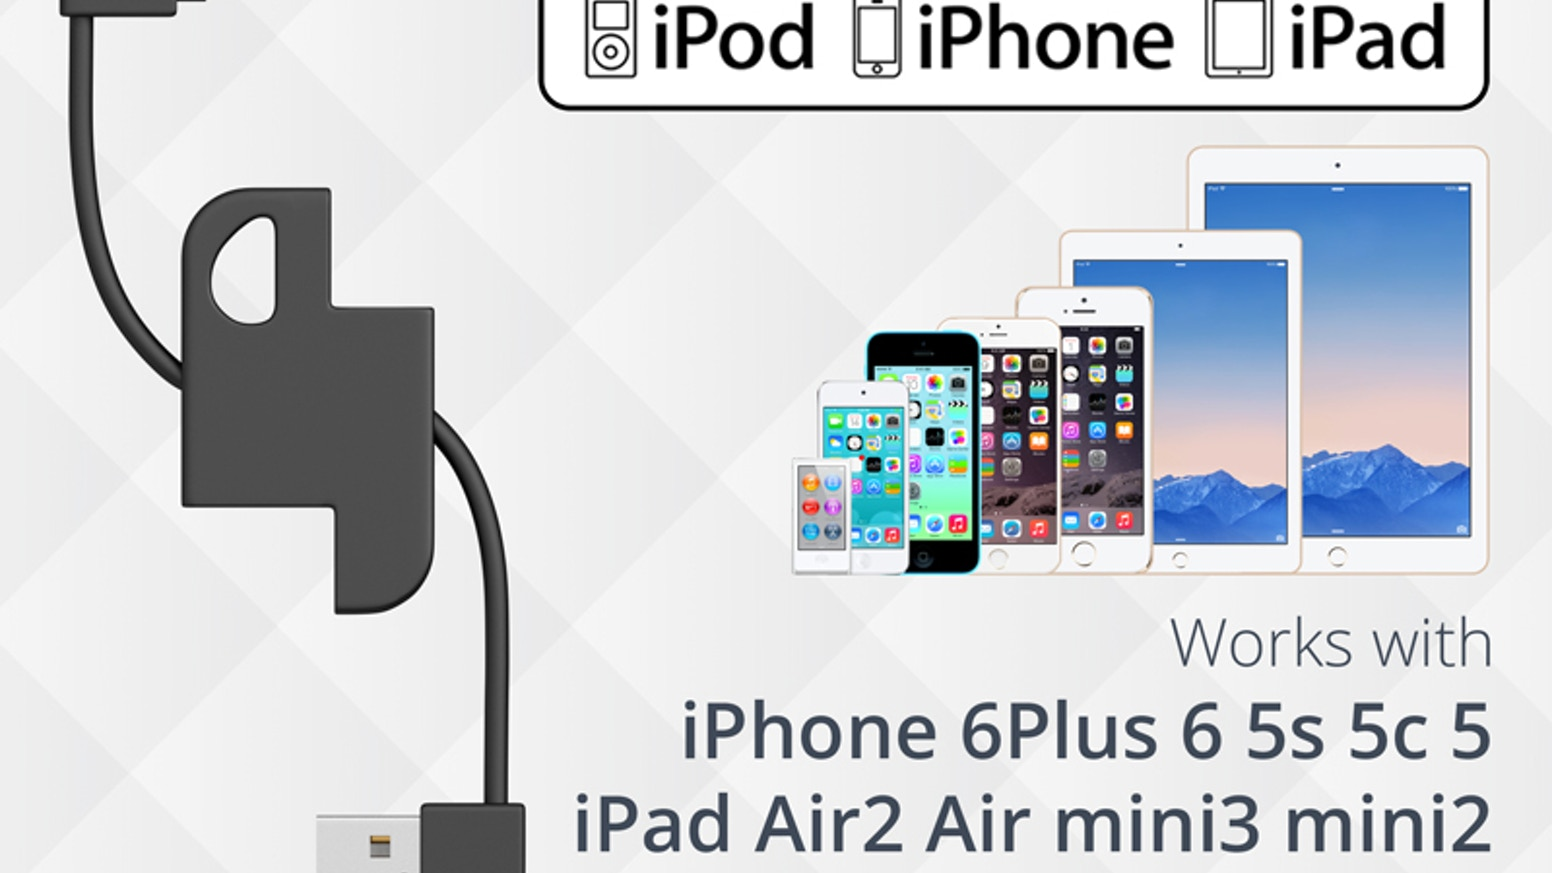 Lightning to USB Sync & Charge keychain cable for iPhone, iPad, iPod and other Lightning port based devices.